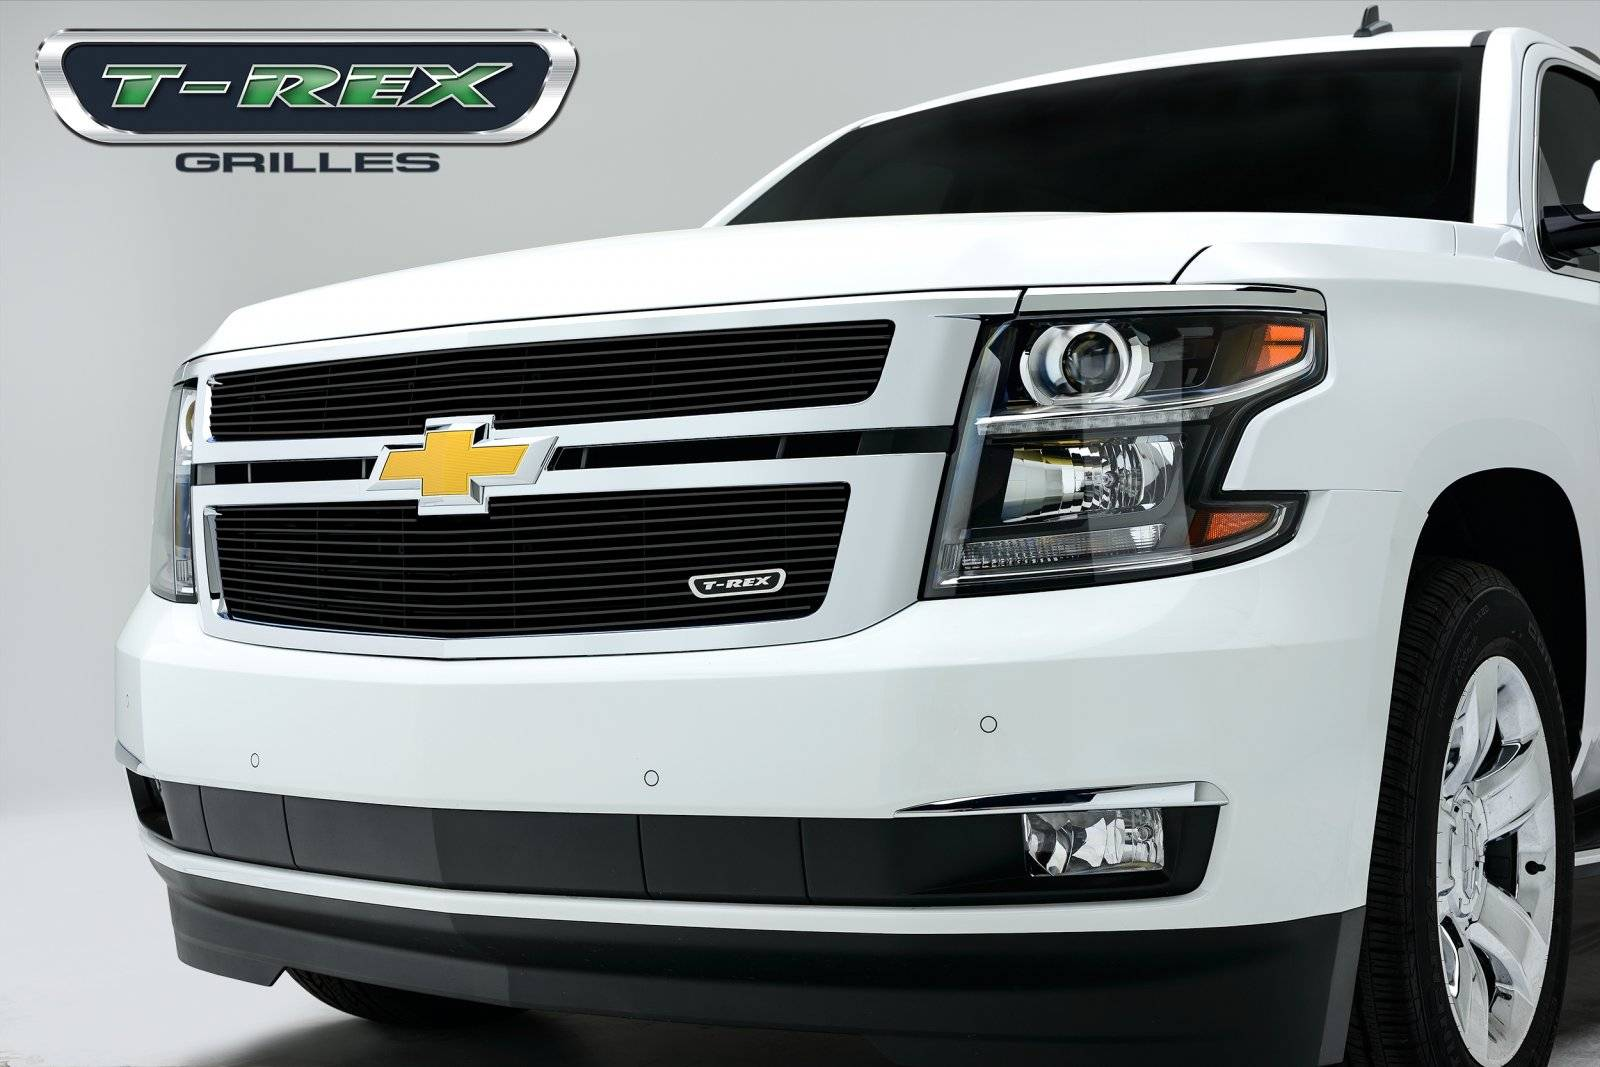 T-REX Chevrolet Suburban, Tahoe Billet Grille Overlay/Bolt On - 2 Pc  - All Black - Pt # 21055B